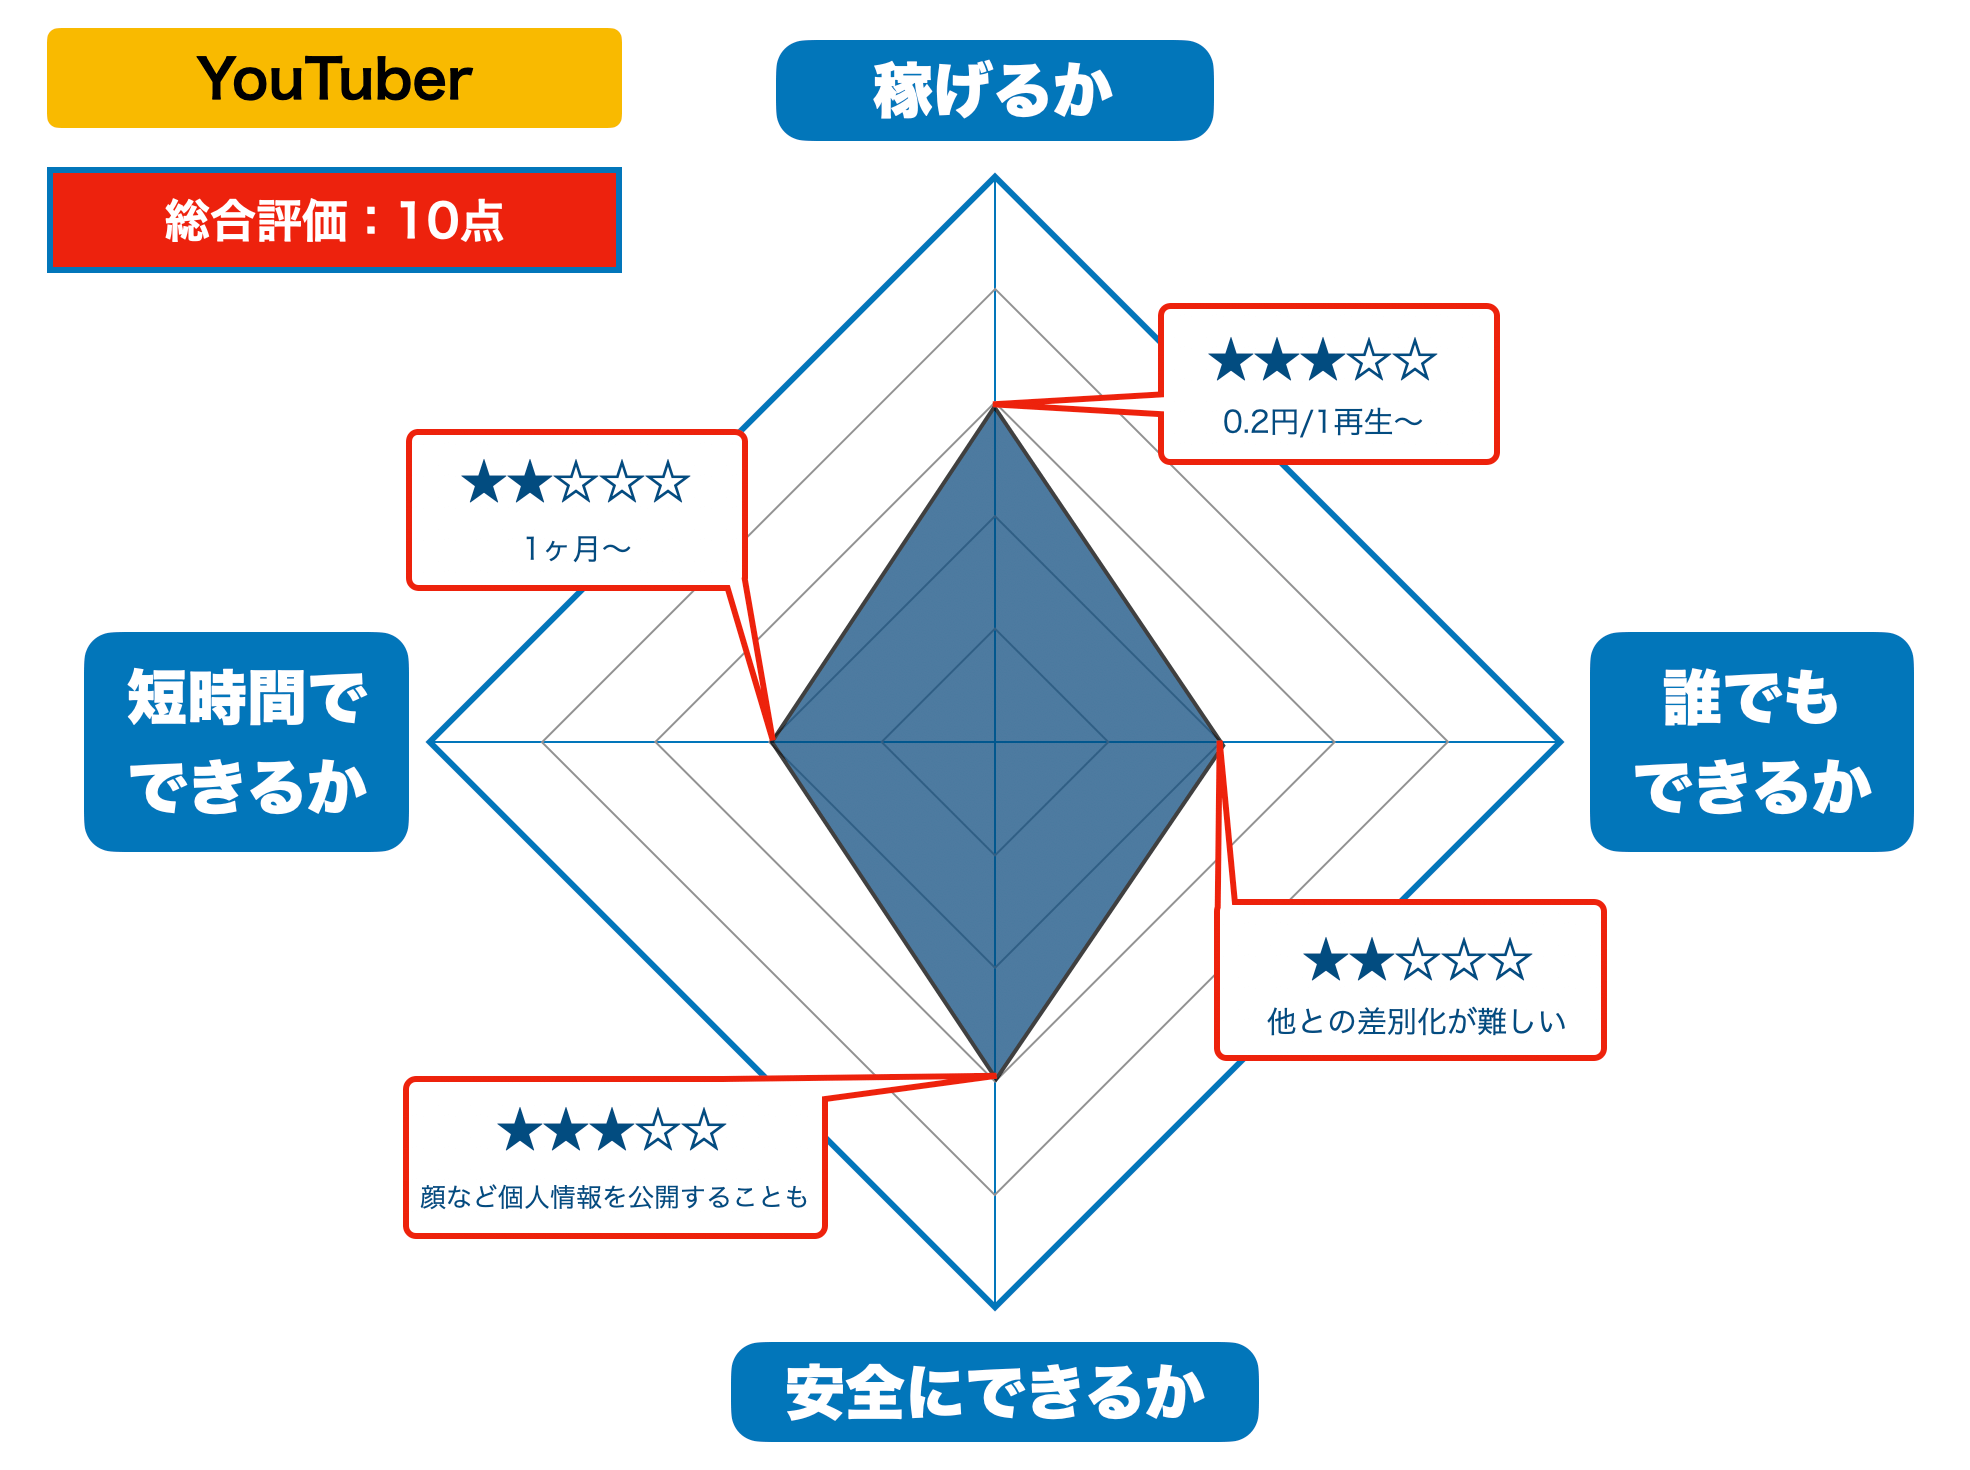 YouTuberの評価